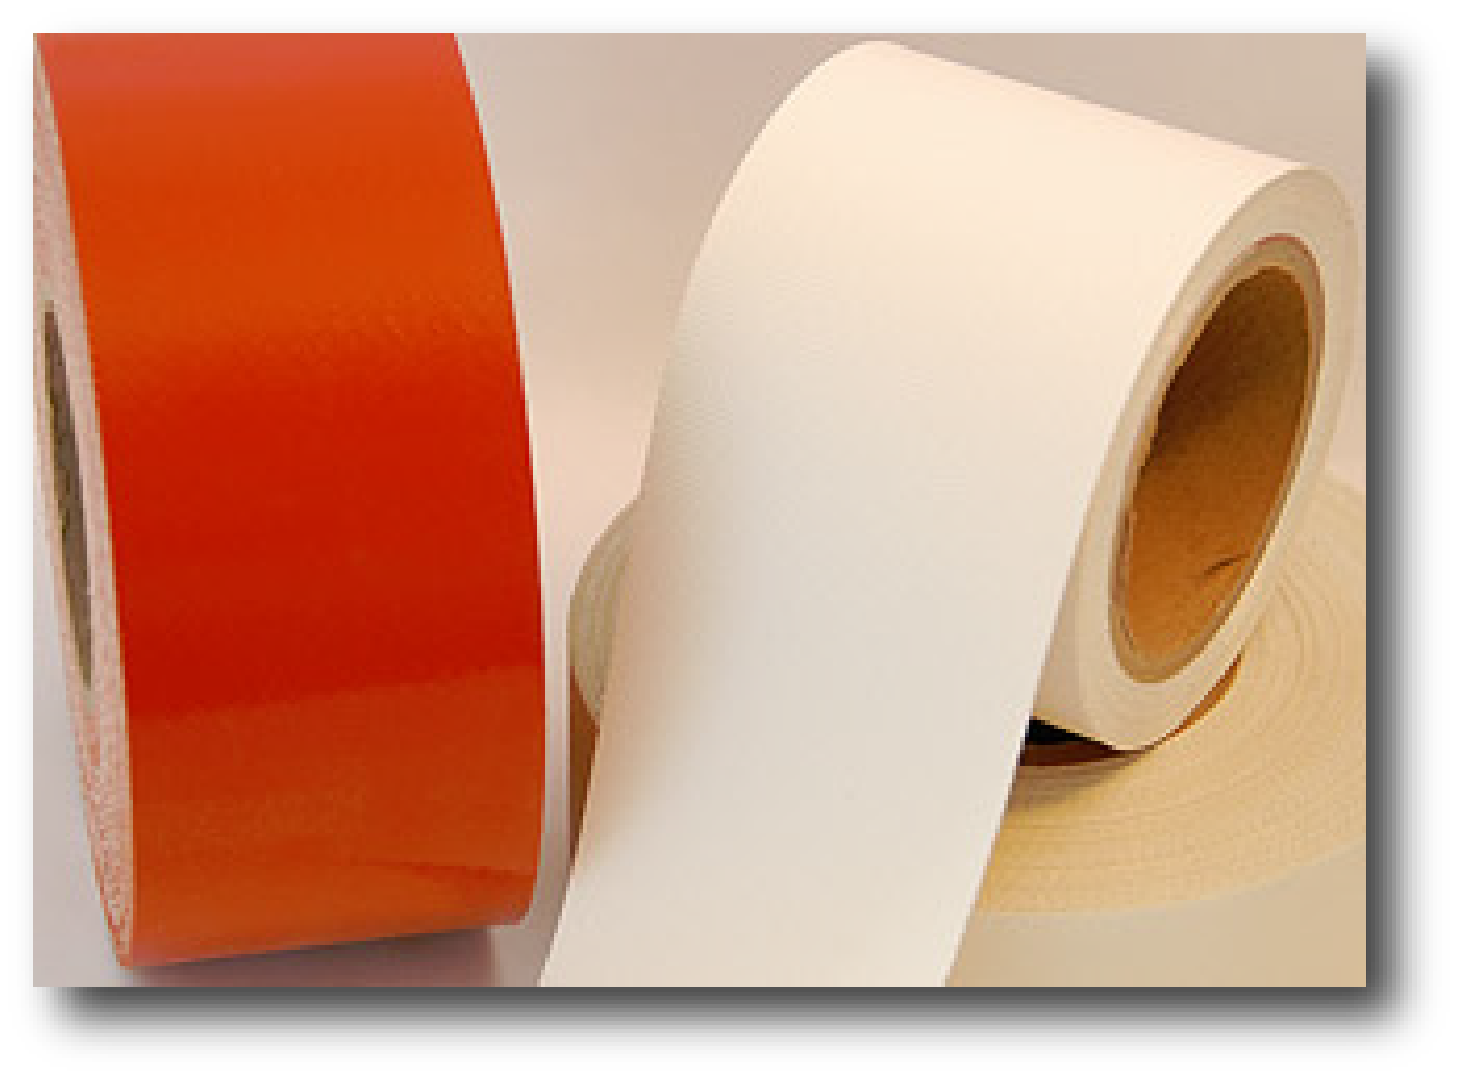 Taconic Products Silicone Rubber Coated Fabrics